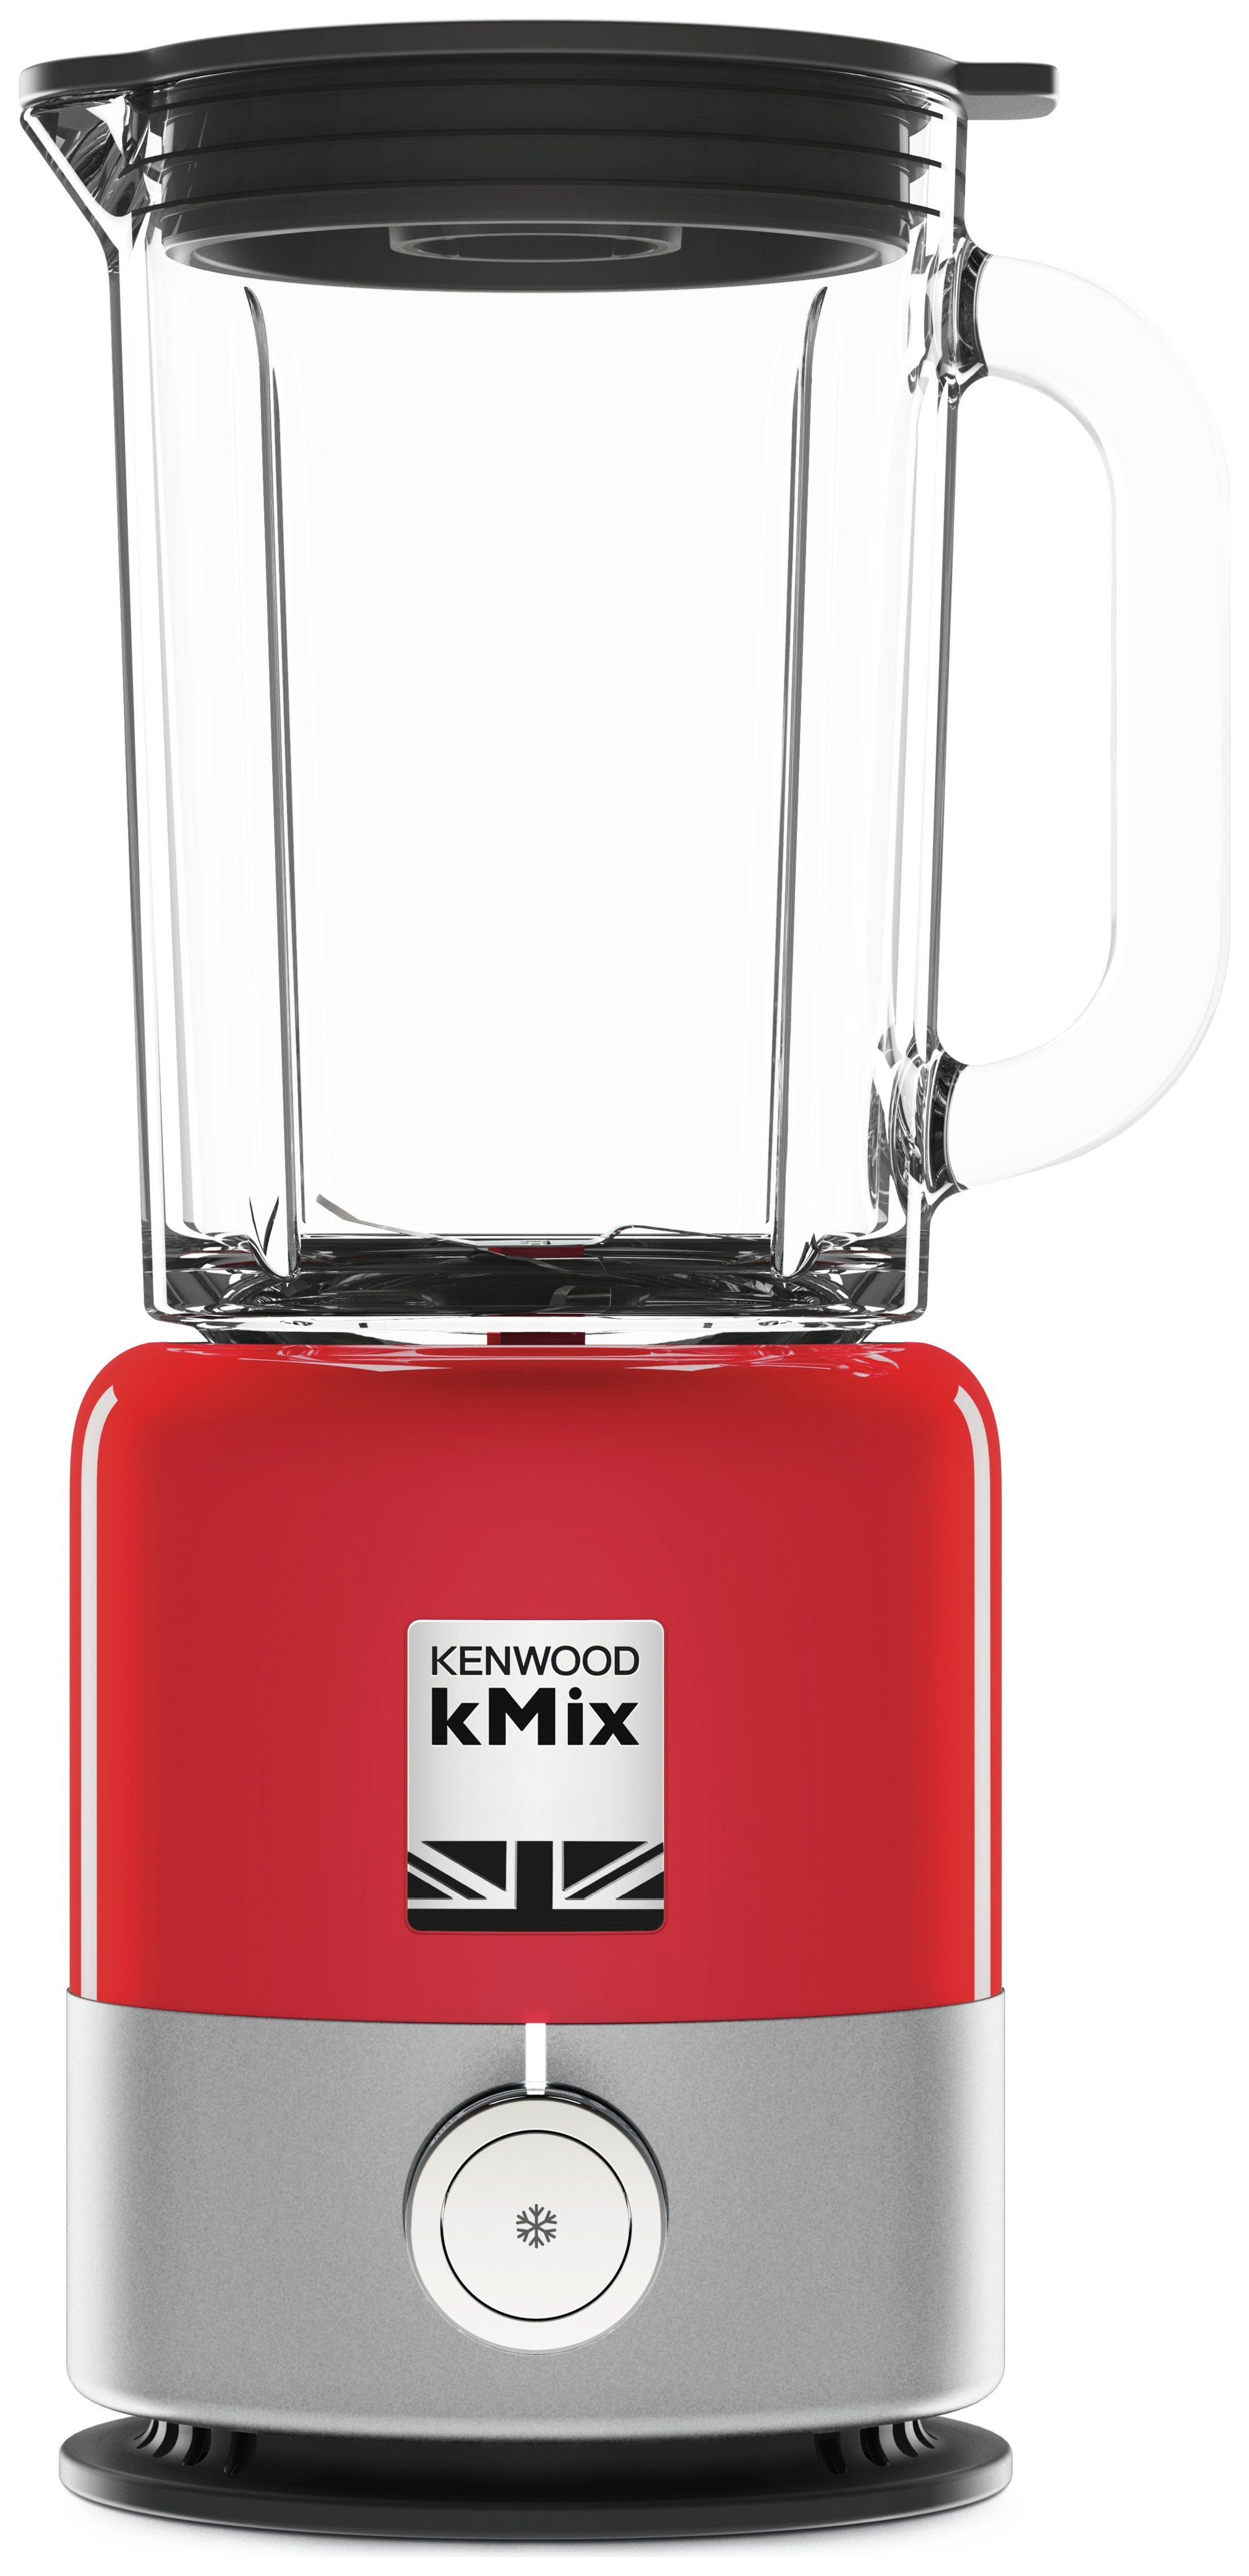 kenwood-kmix-blx750-blender-red